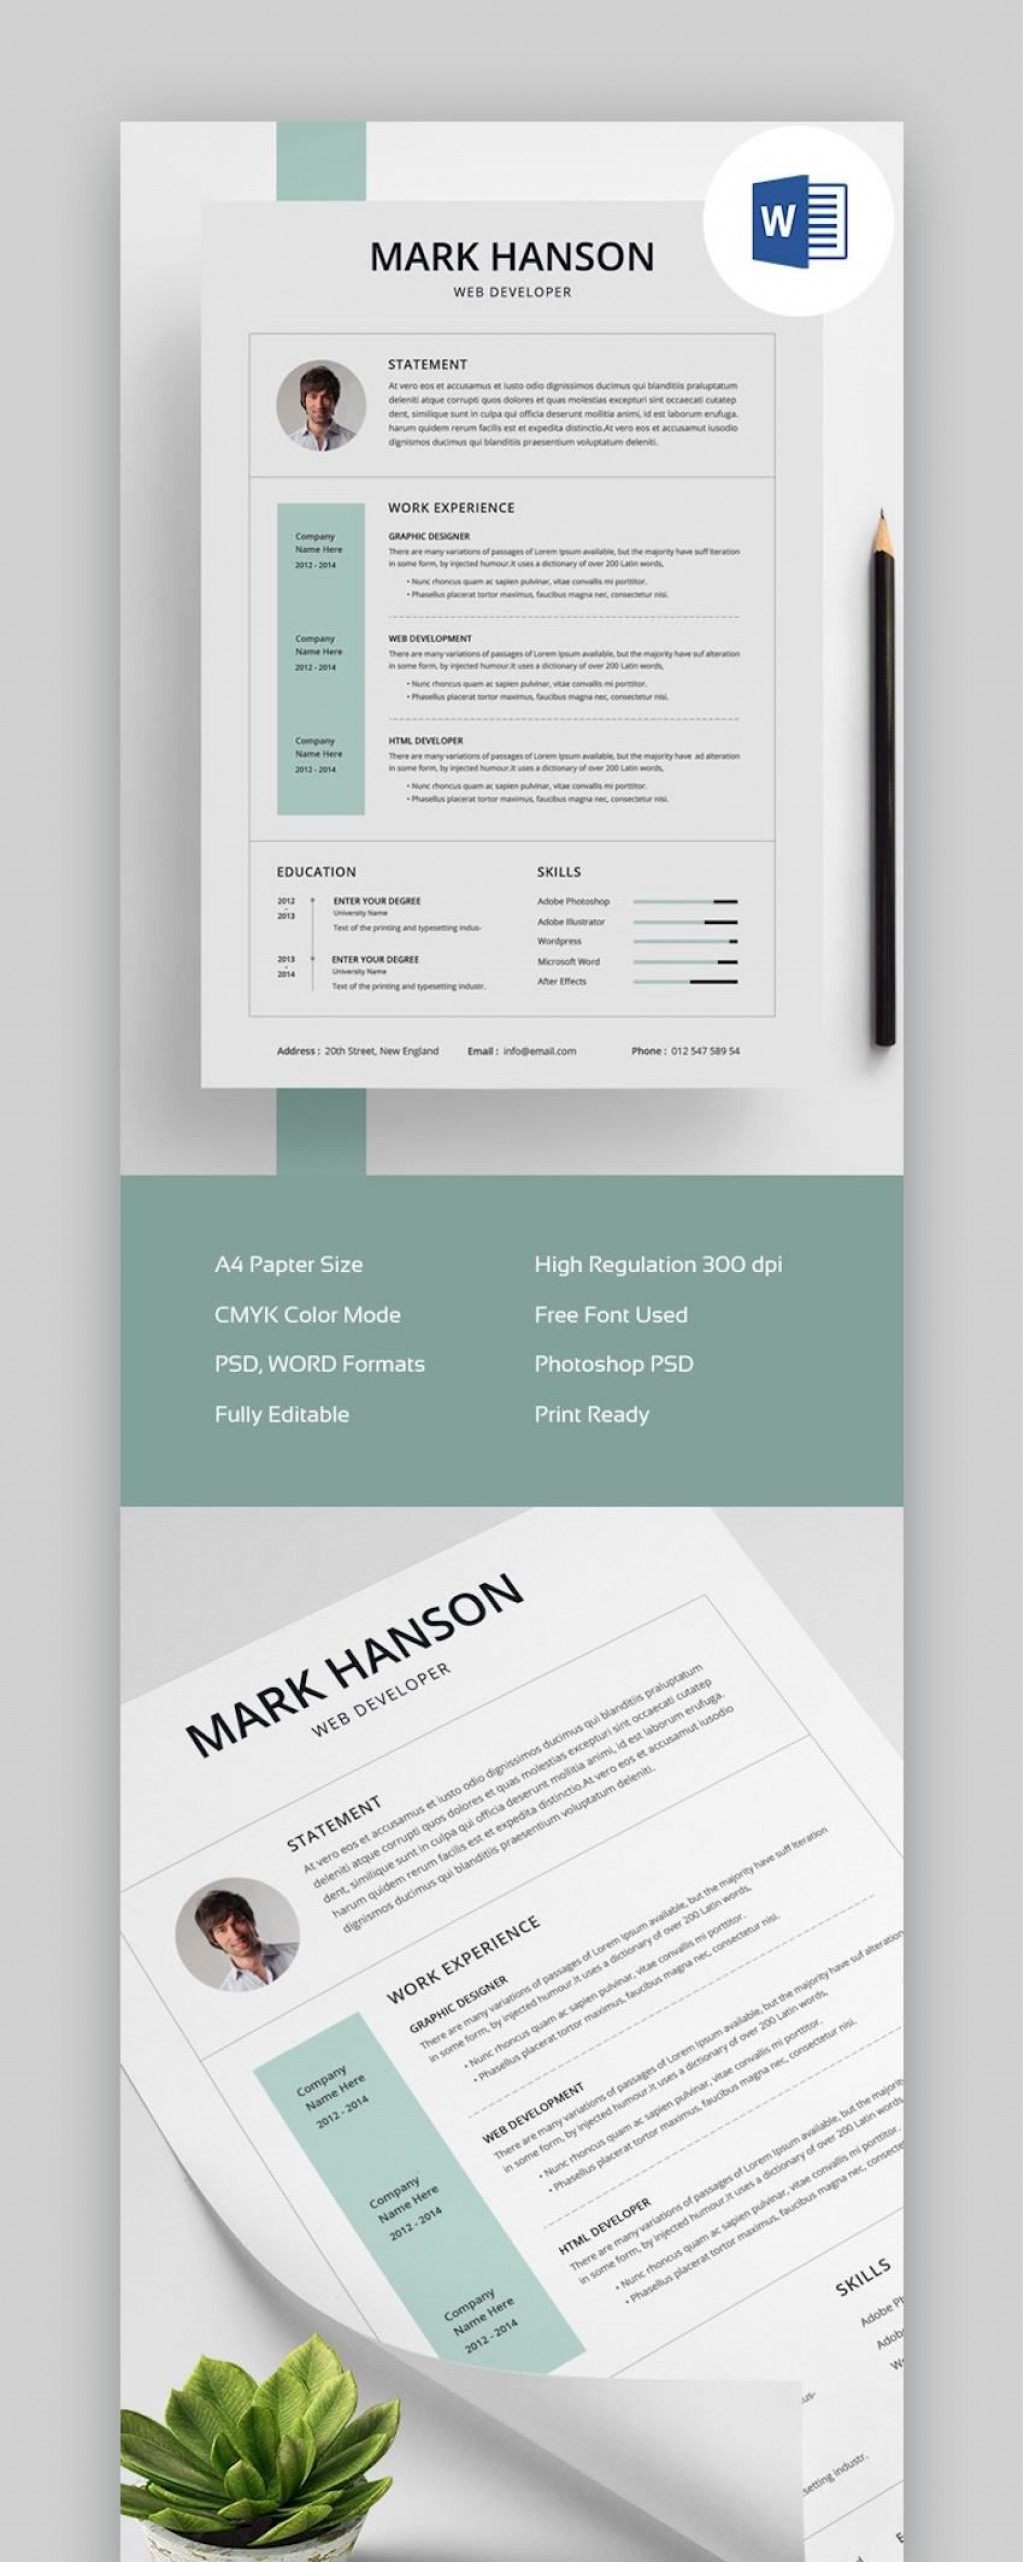 003 Archaicawful Download Elegant Resume Template Microsoft Word Image Large